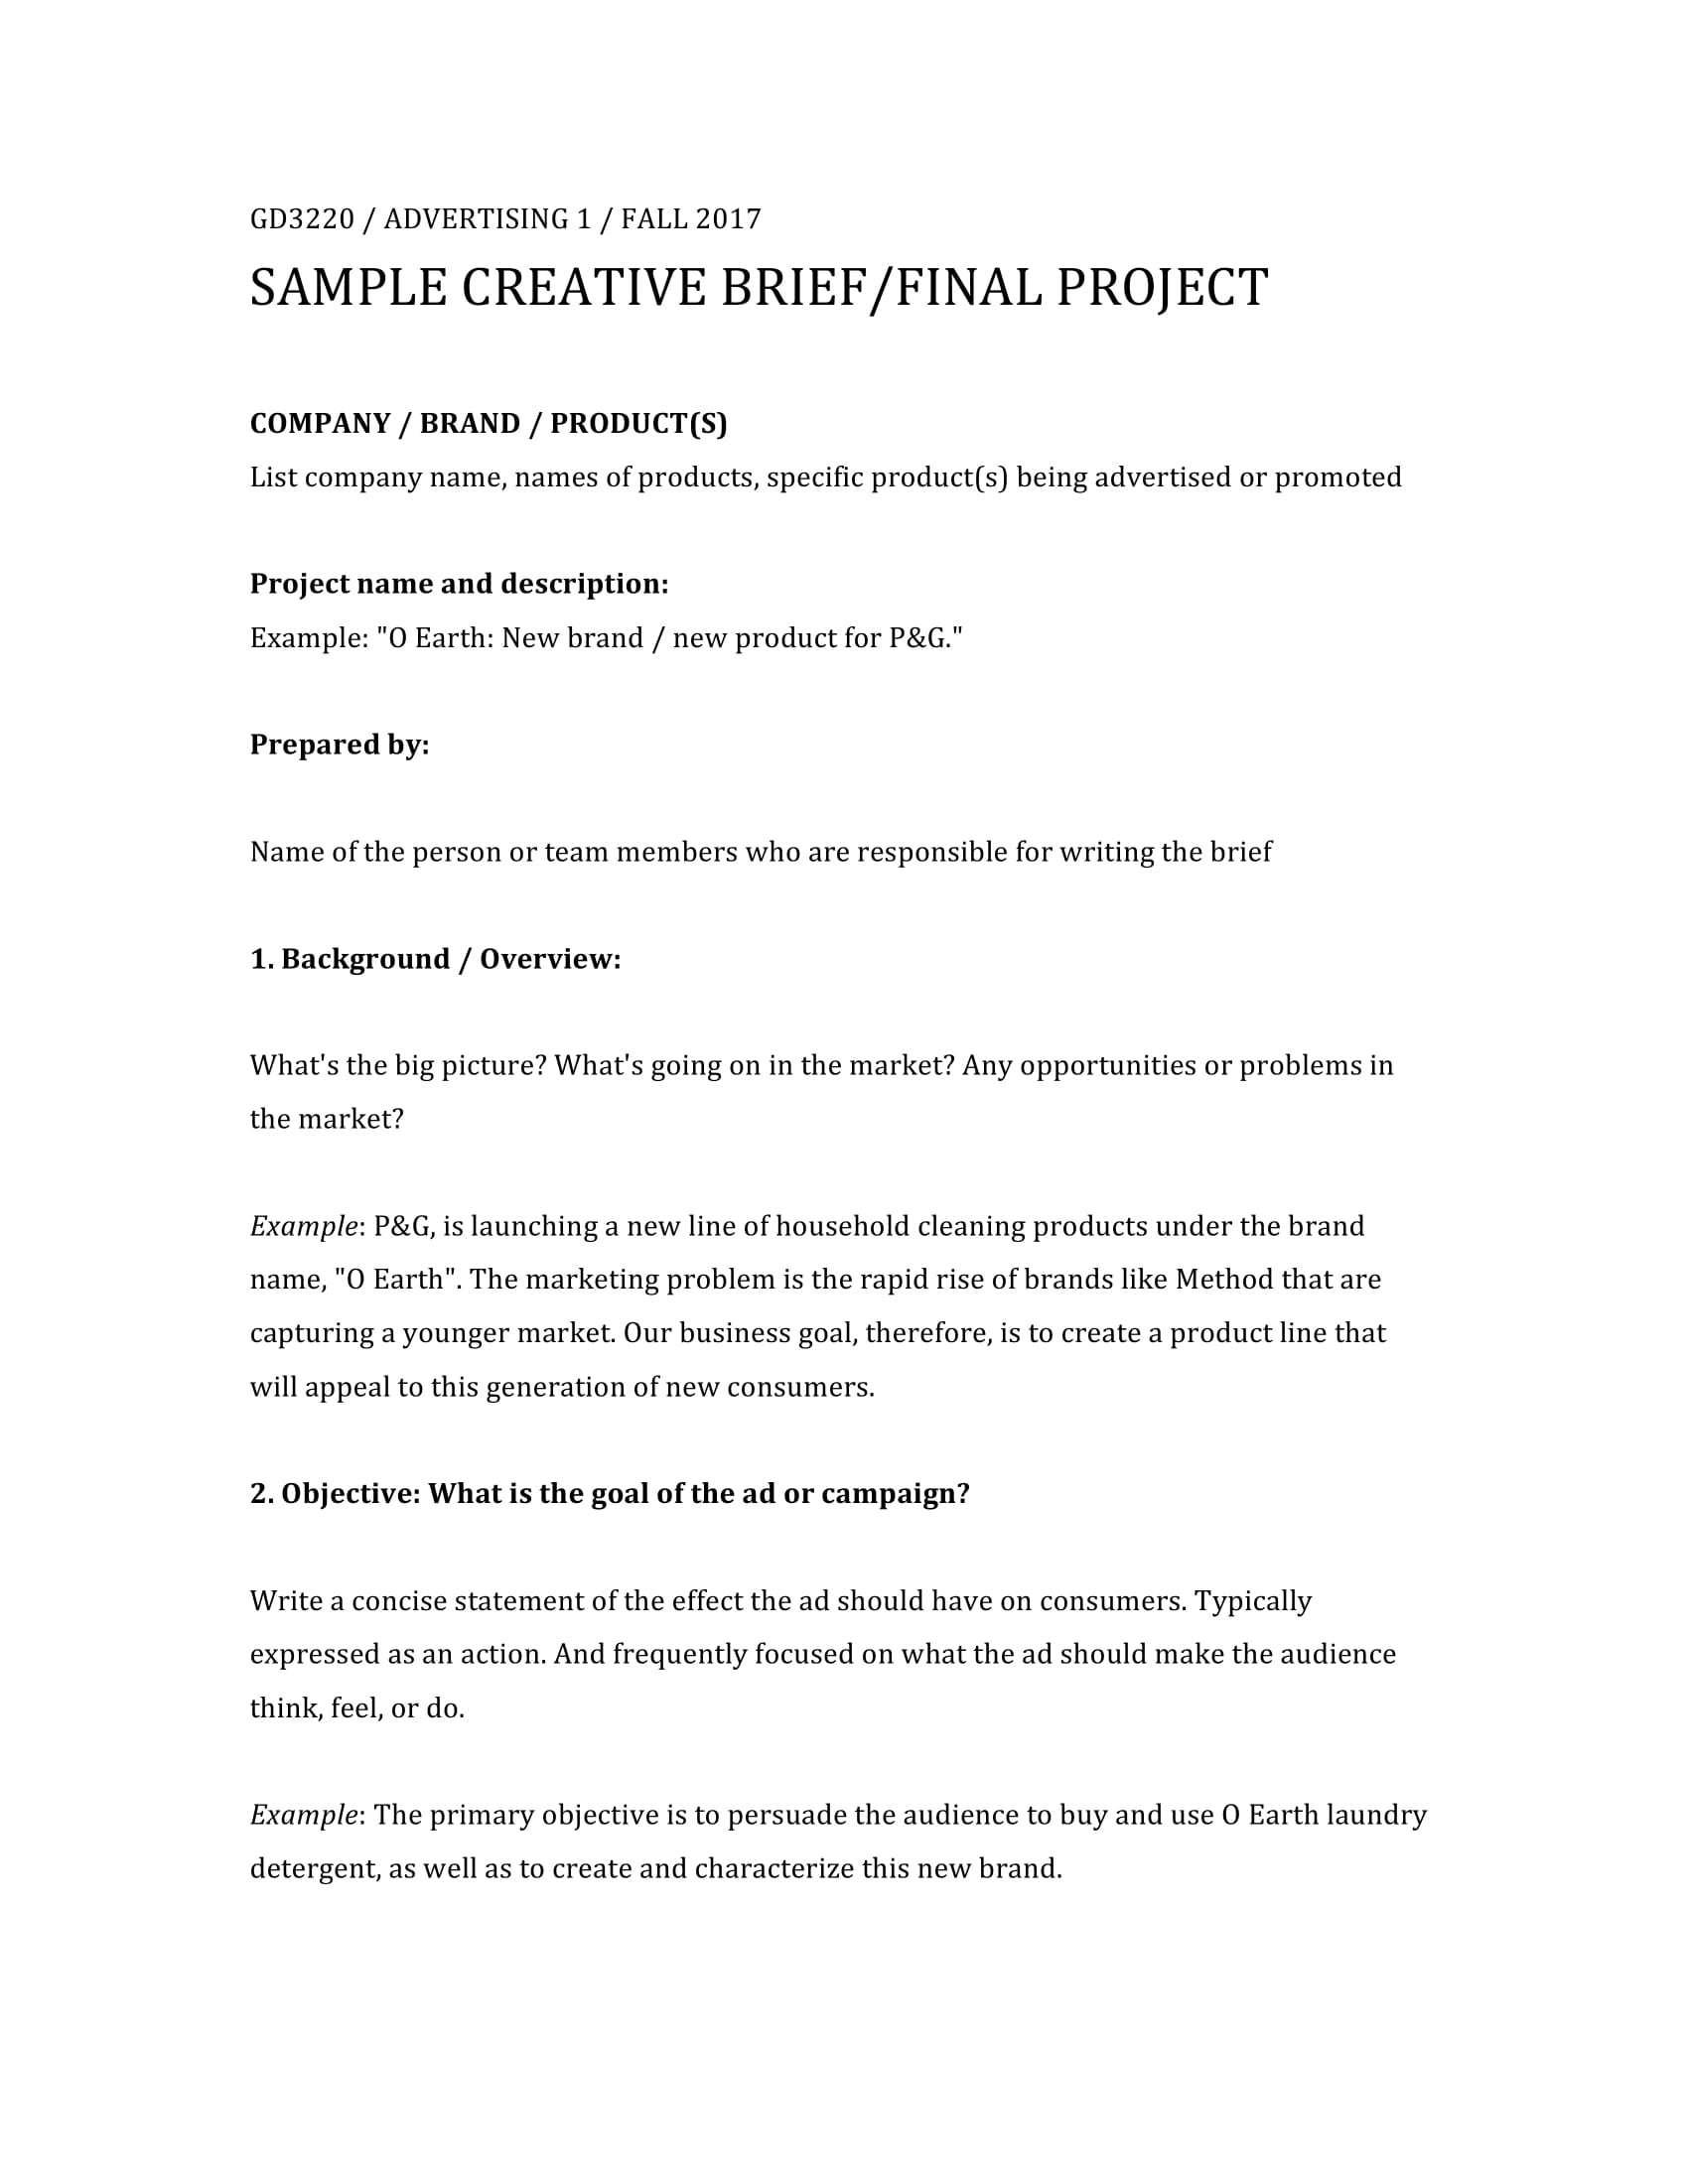 32+ Free Creative Brief Templates and Examples - PDF, DOC | Examples